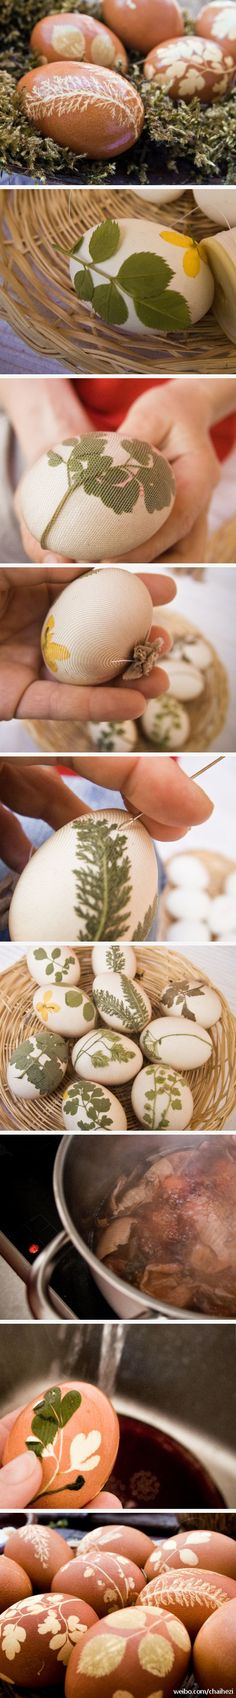 Naturally dyed eggs.